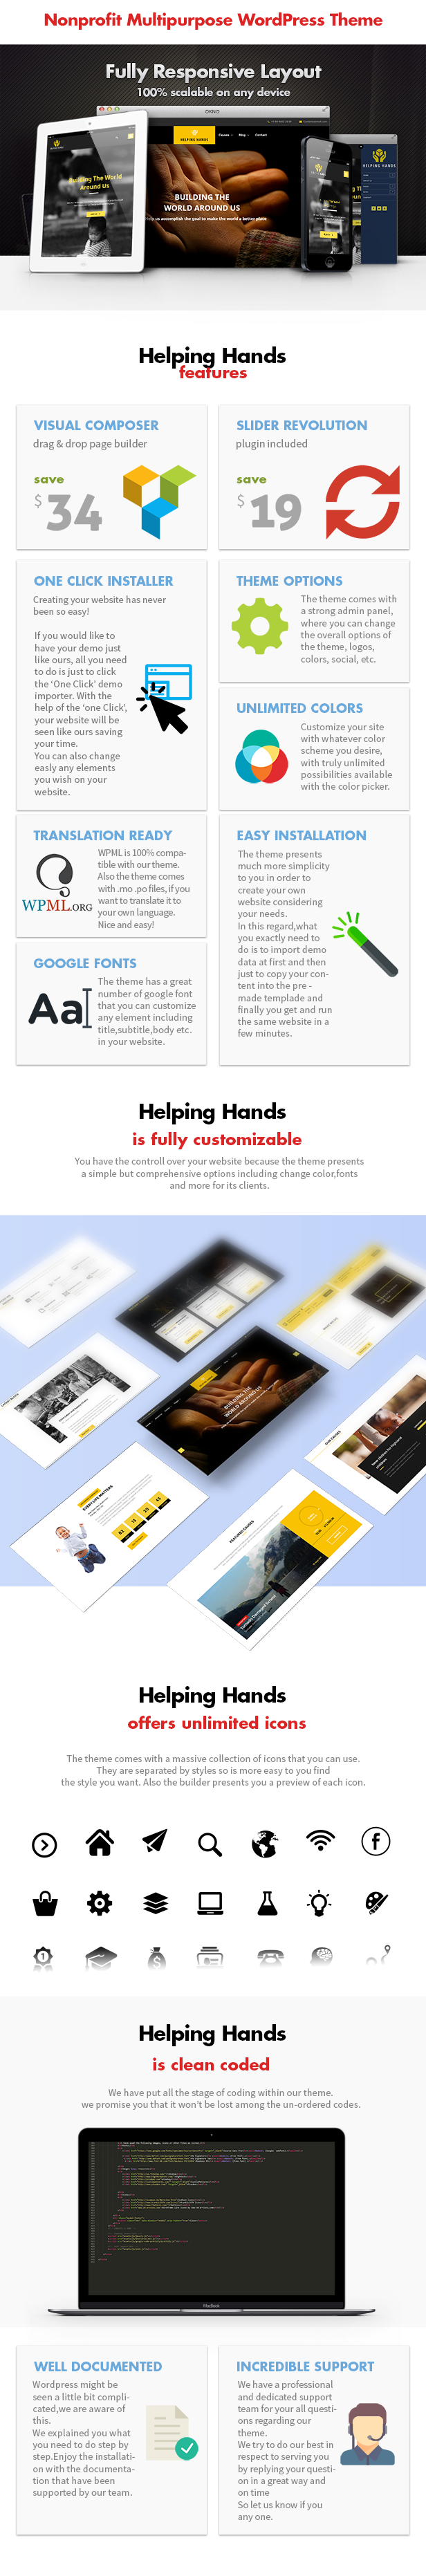 Helping Hands - Crowdfunding Charity Theme - 6